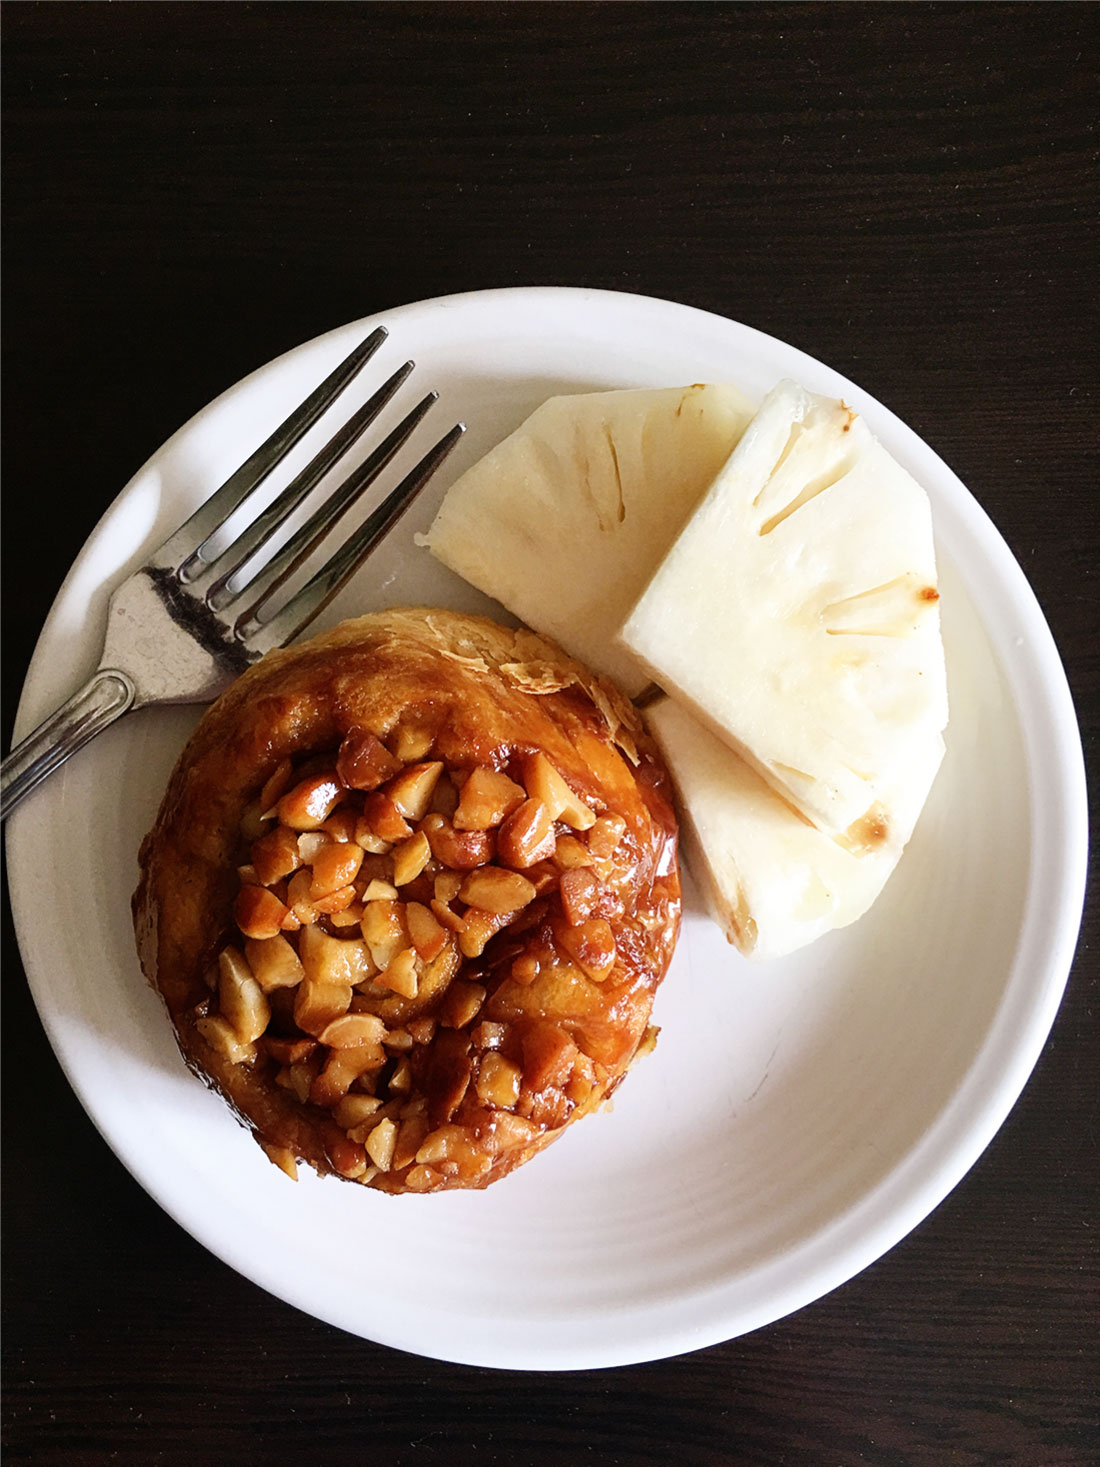 Travel - Things to do in Kauai -favorite places to eat, macadamia nut roll